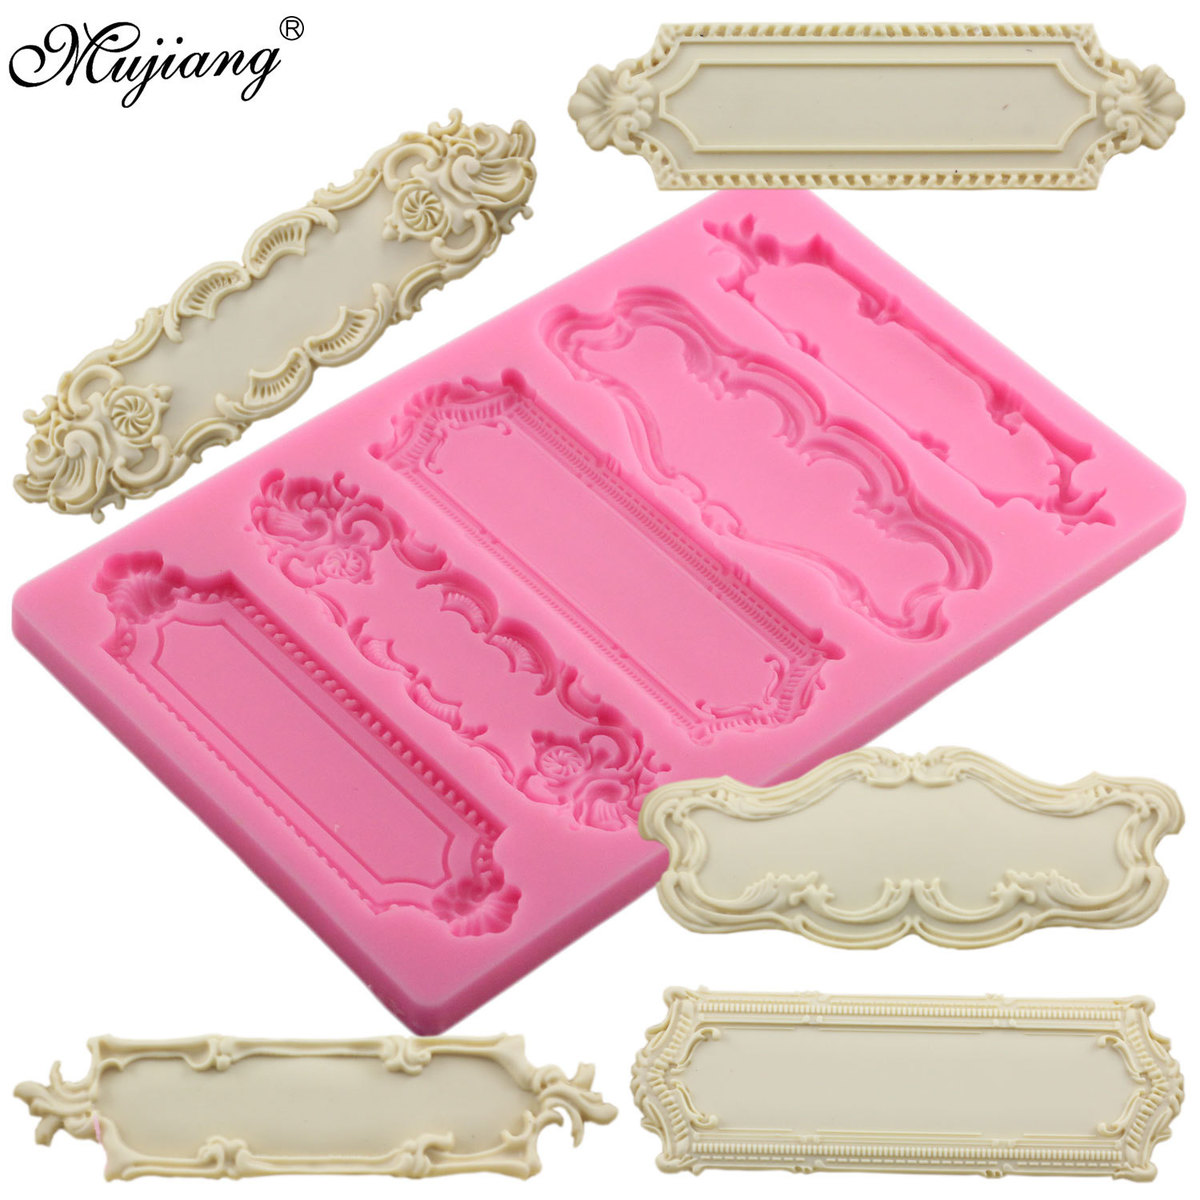 Pottery & Ceramics Baroque Scrolls Cake Border Silicone Flower Vine Fondant Cake Decorating Tools Cupcake Chocolate Gum Paste Clay Candy Molds Cleaning The Oral Cavity.